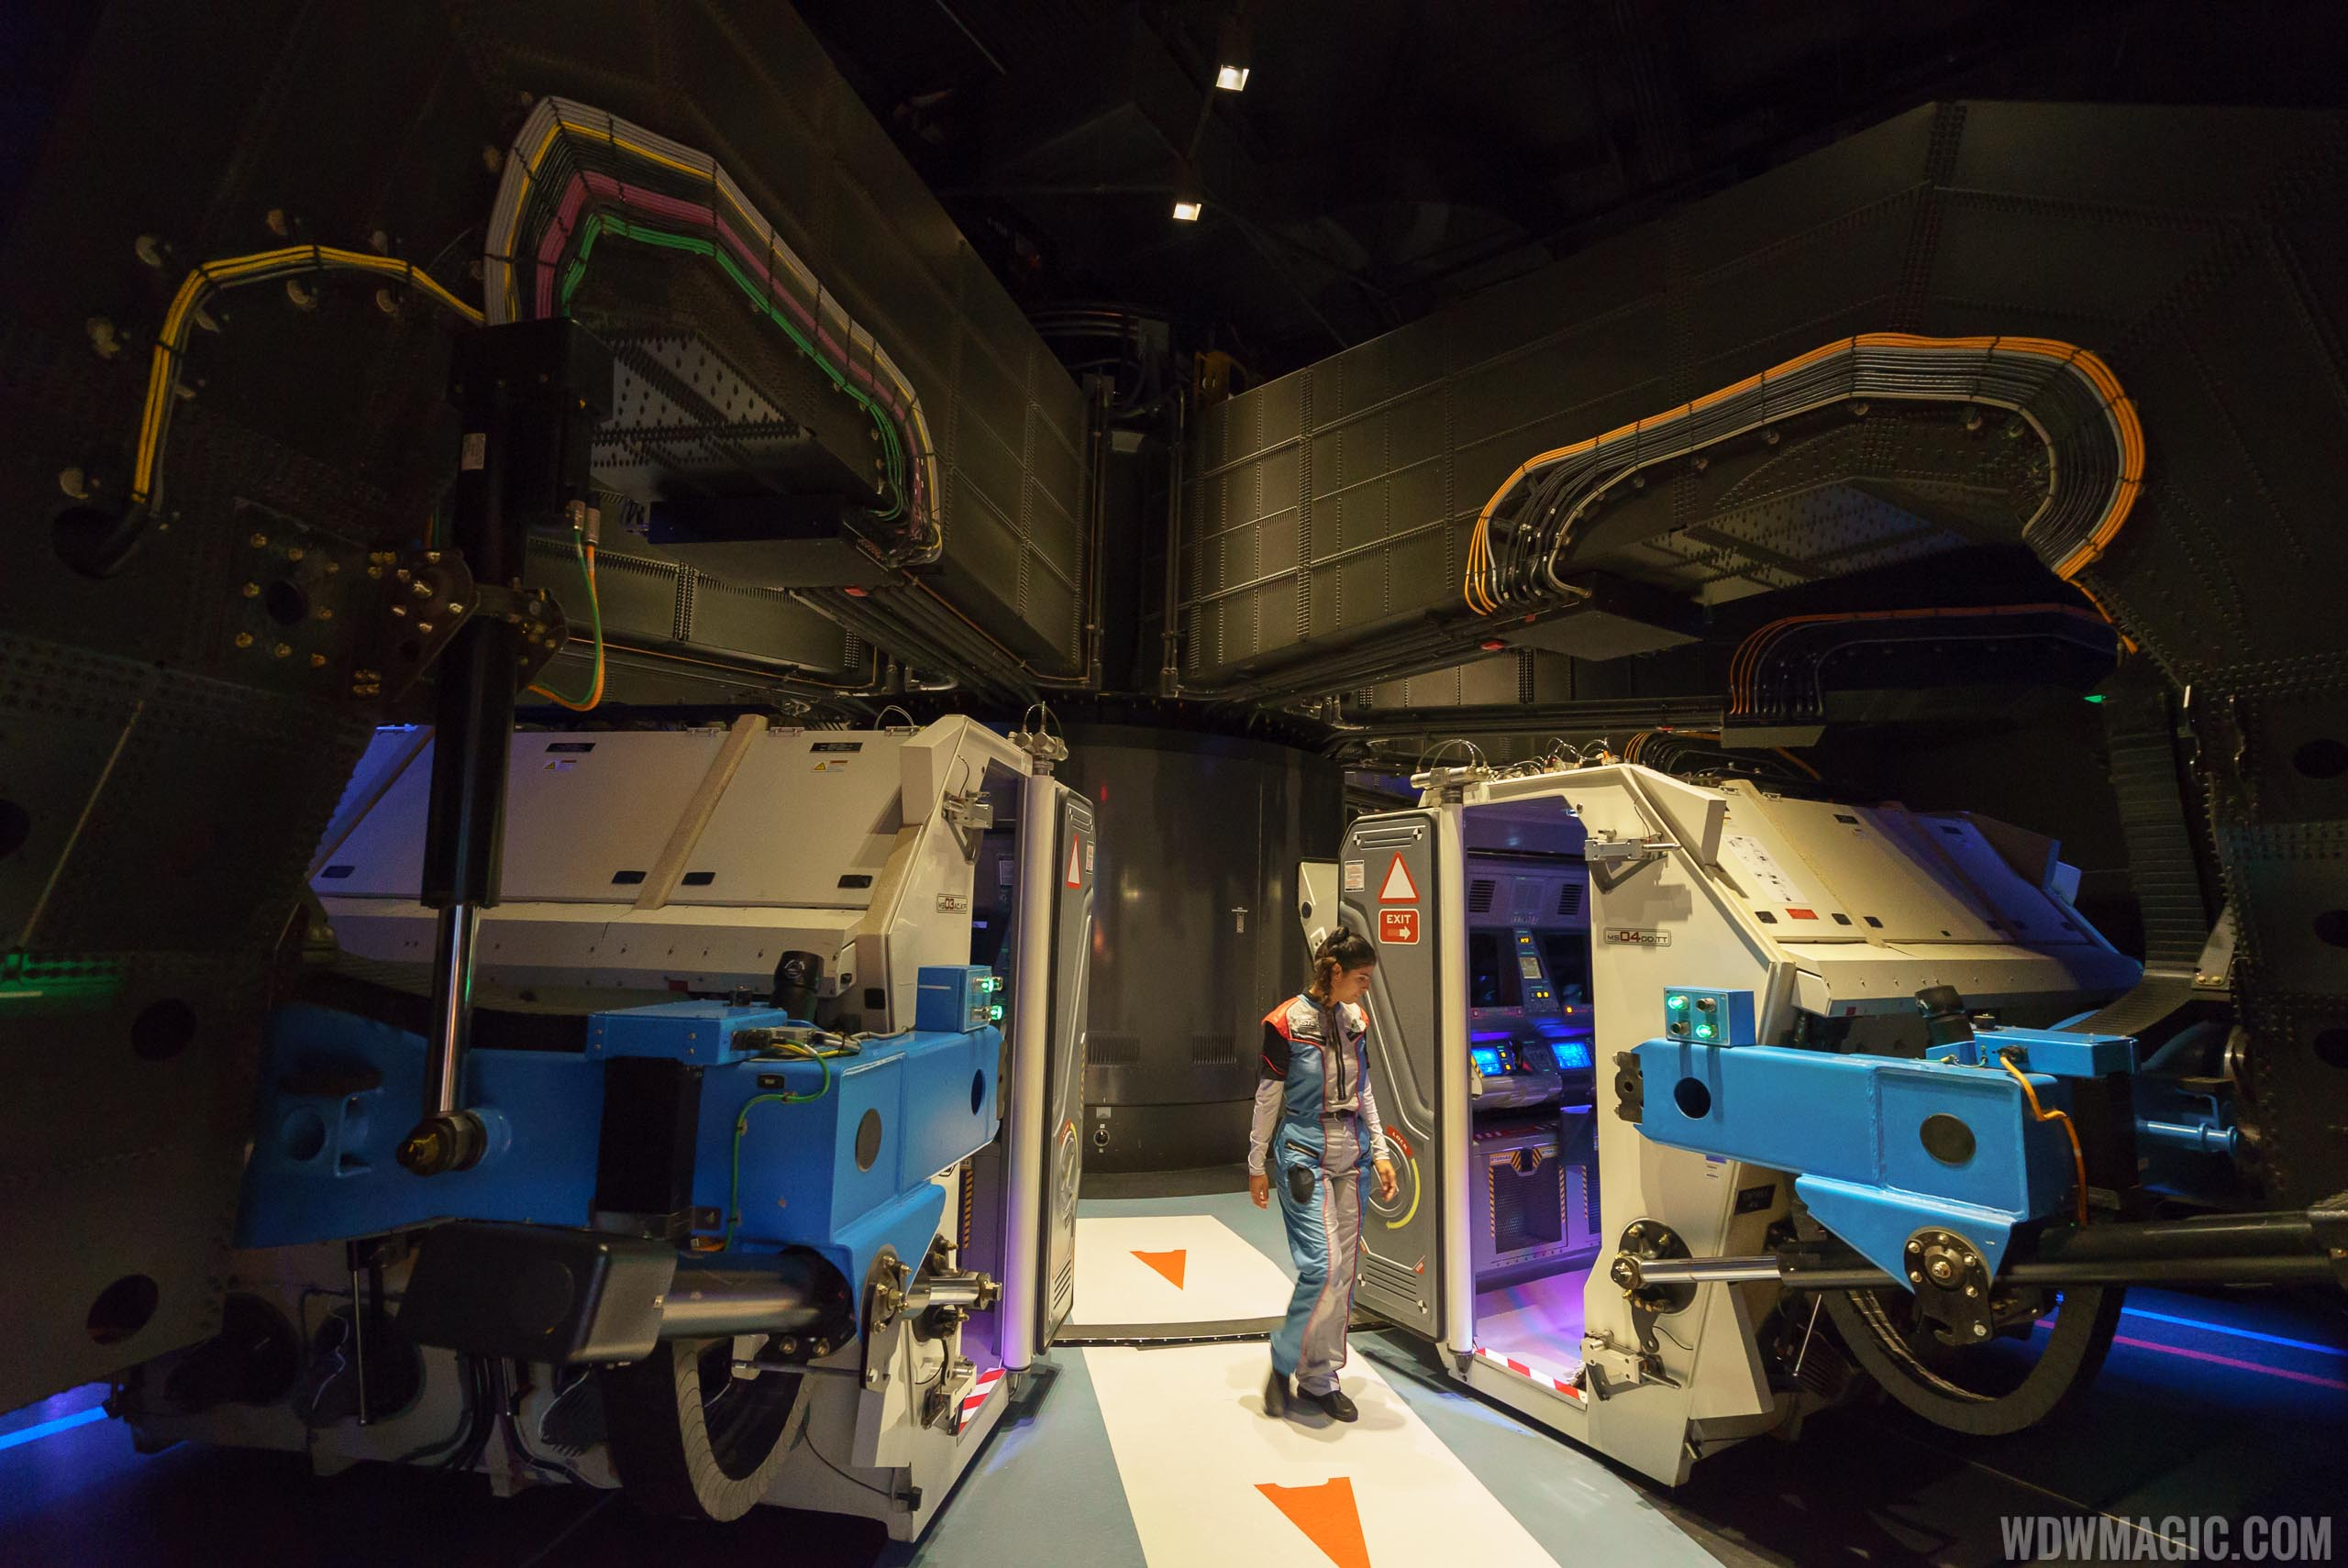 The Mission SPACE centrifuge ride system